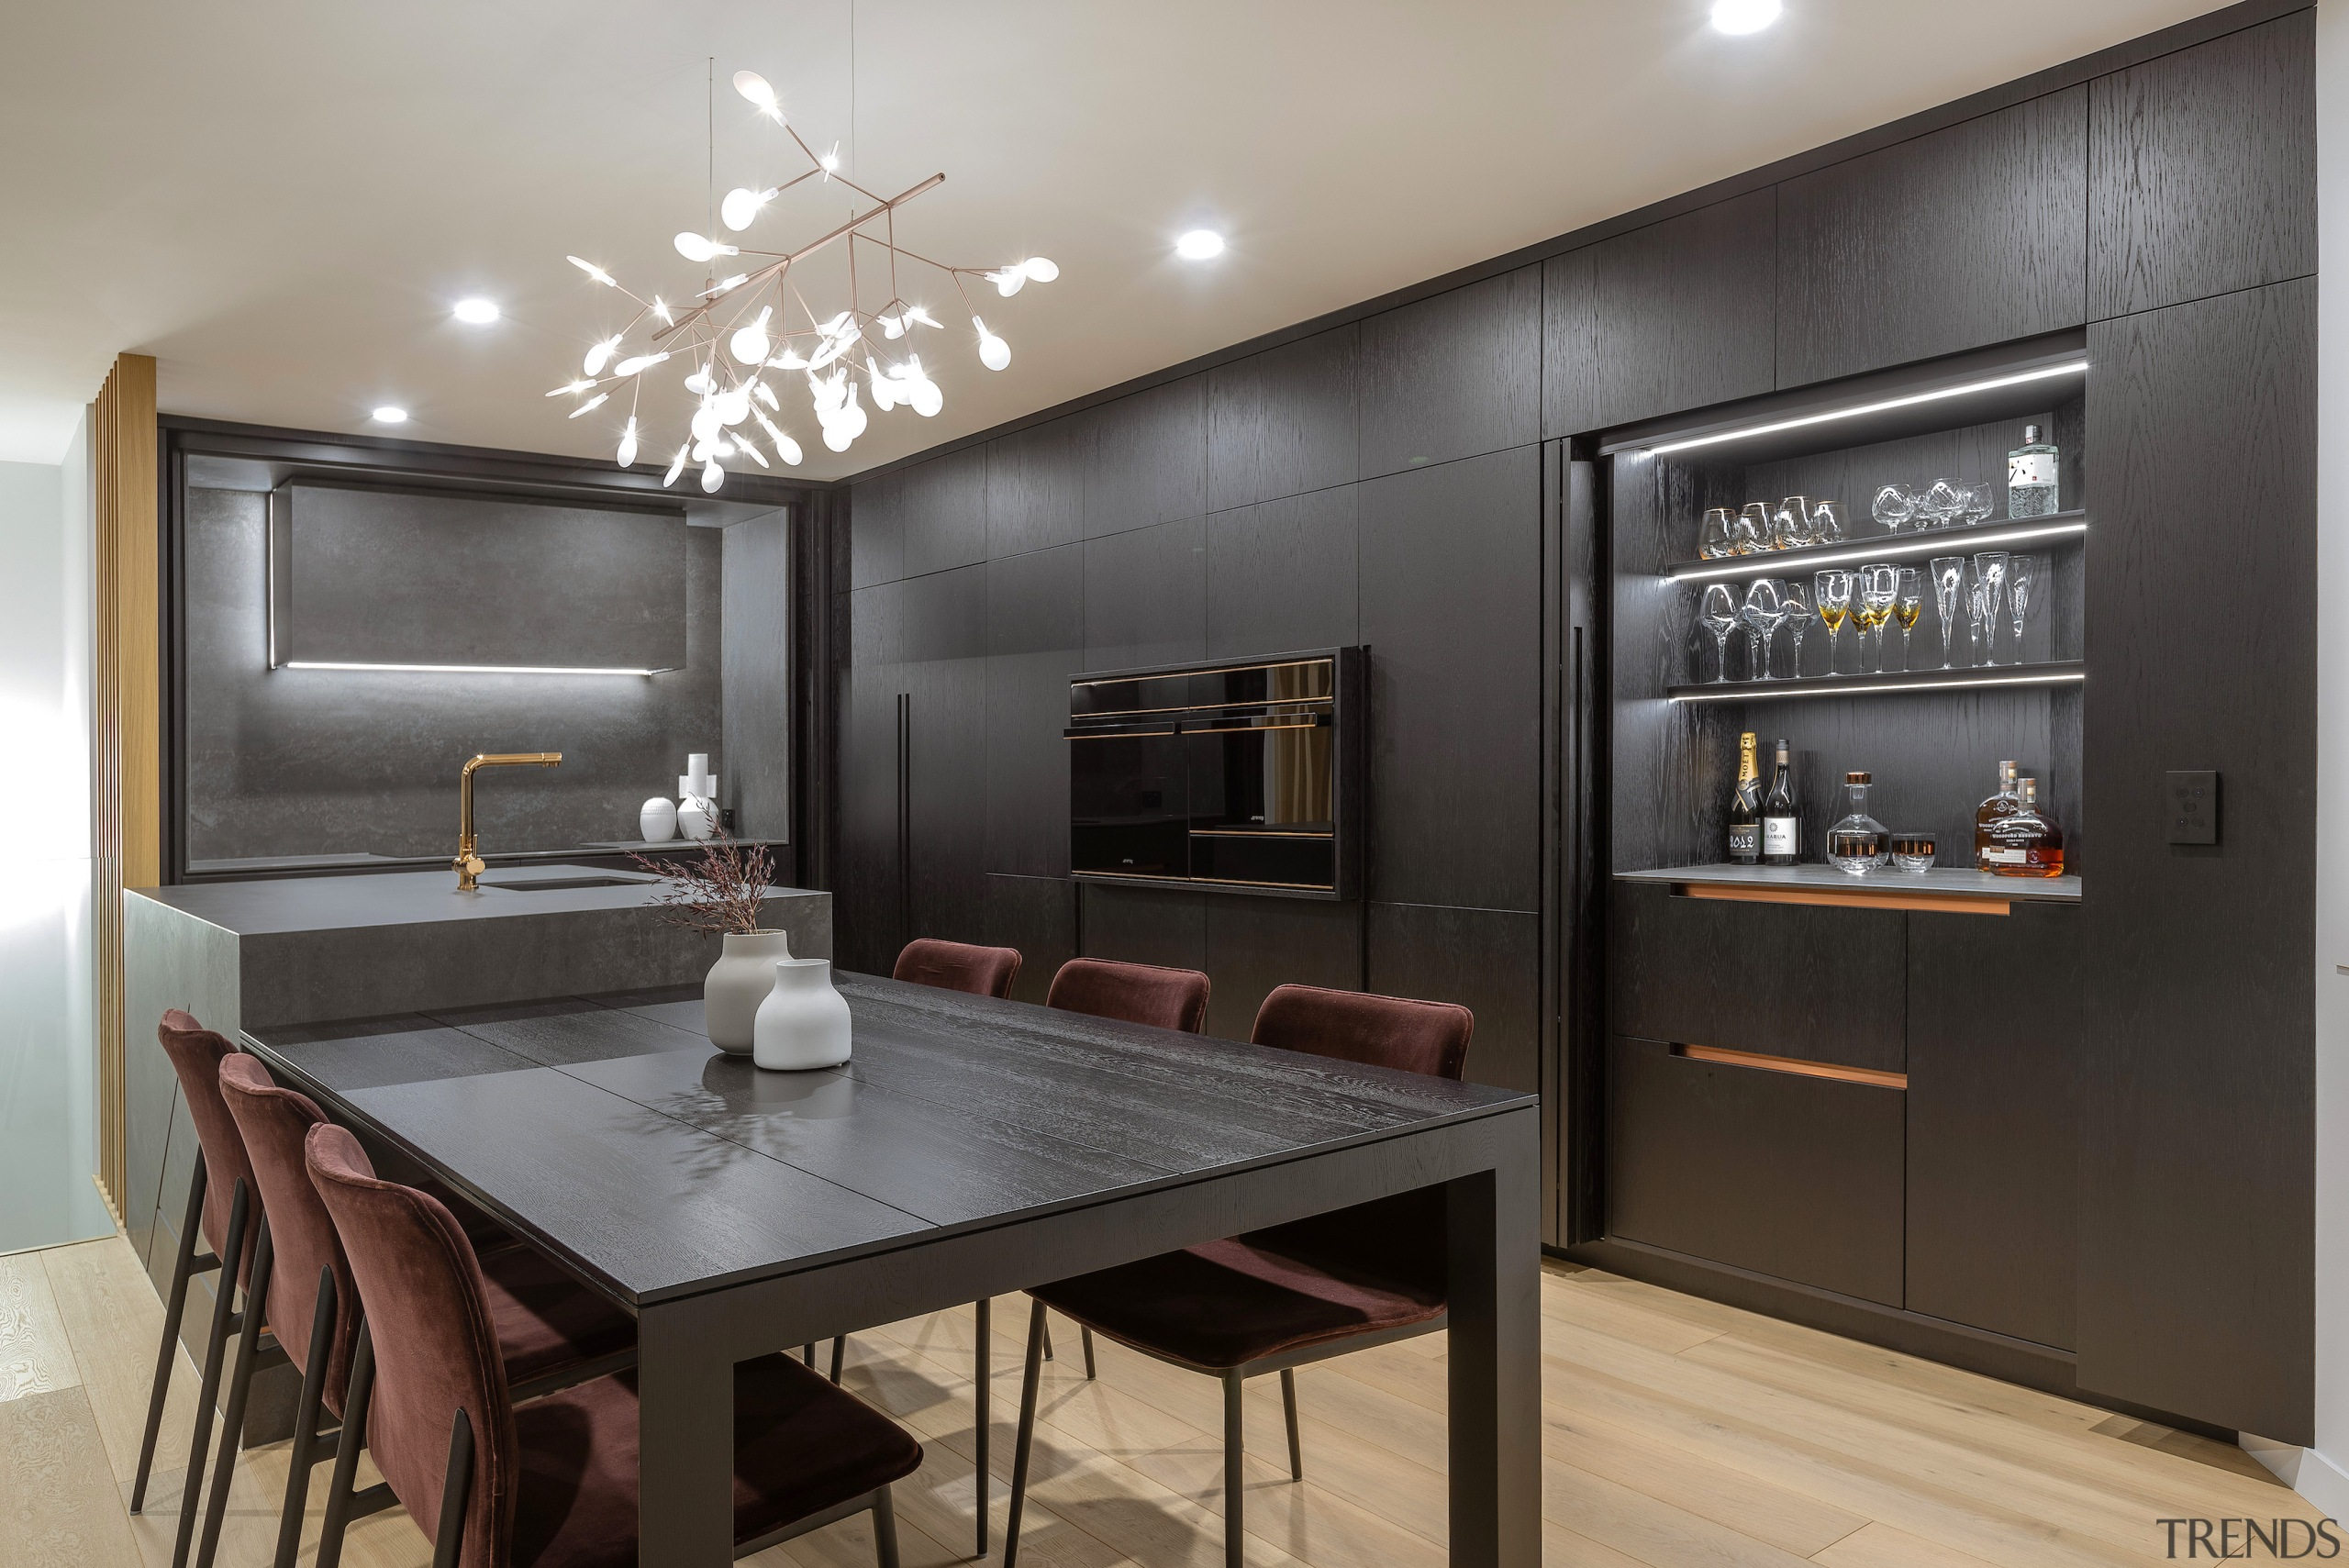 This major transformation of a dated kitchen greatly